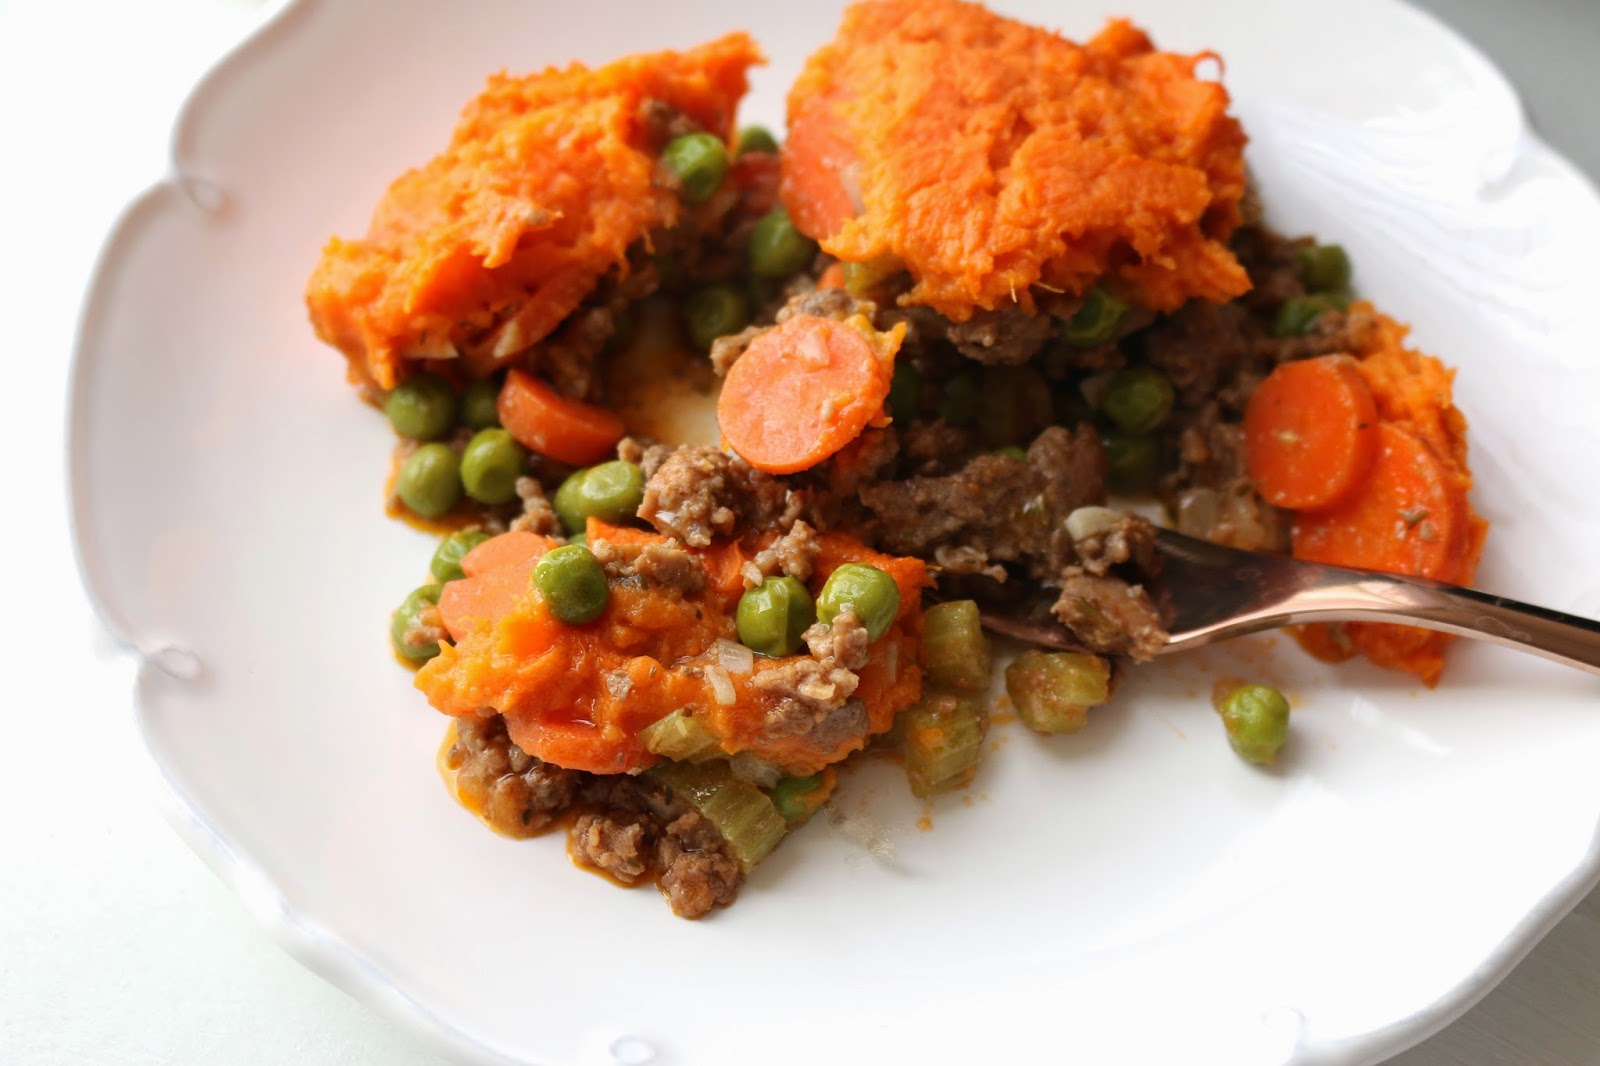 Veggie Heavy Sweet Potato Lamb Shepherd's Pie: Packed with tons of veggies and made with lamb, this easy stew is special enough to make for a celebratory dinner, yet is comforting enough to make any night of the week.